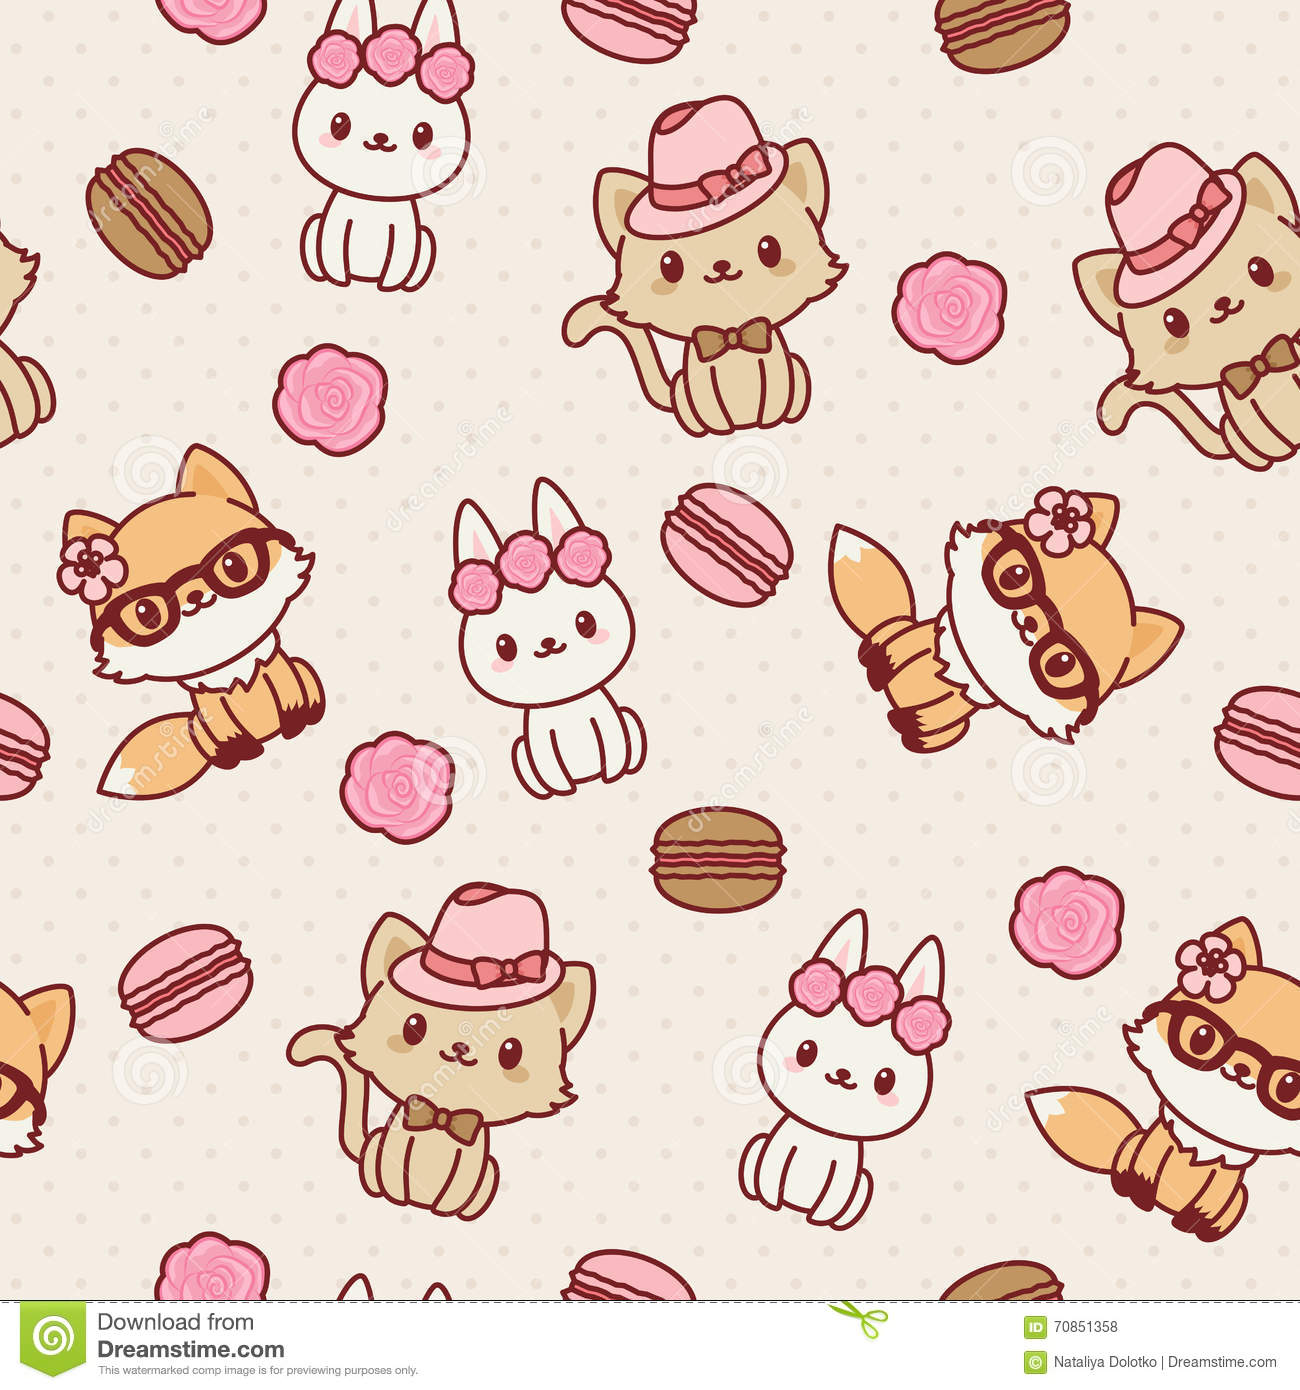 Kawaii animals seamless wallpaper stock vector - Papel decorativo para paredes ...